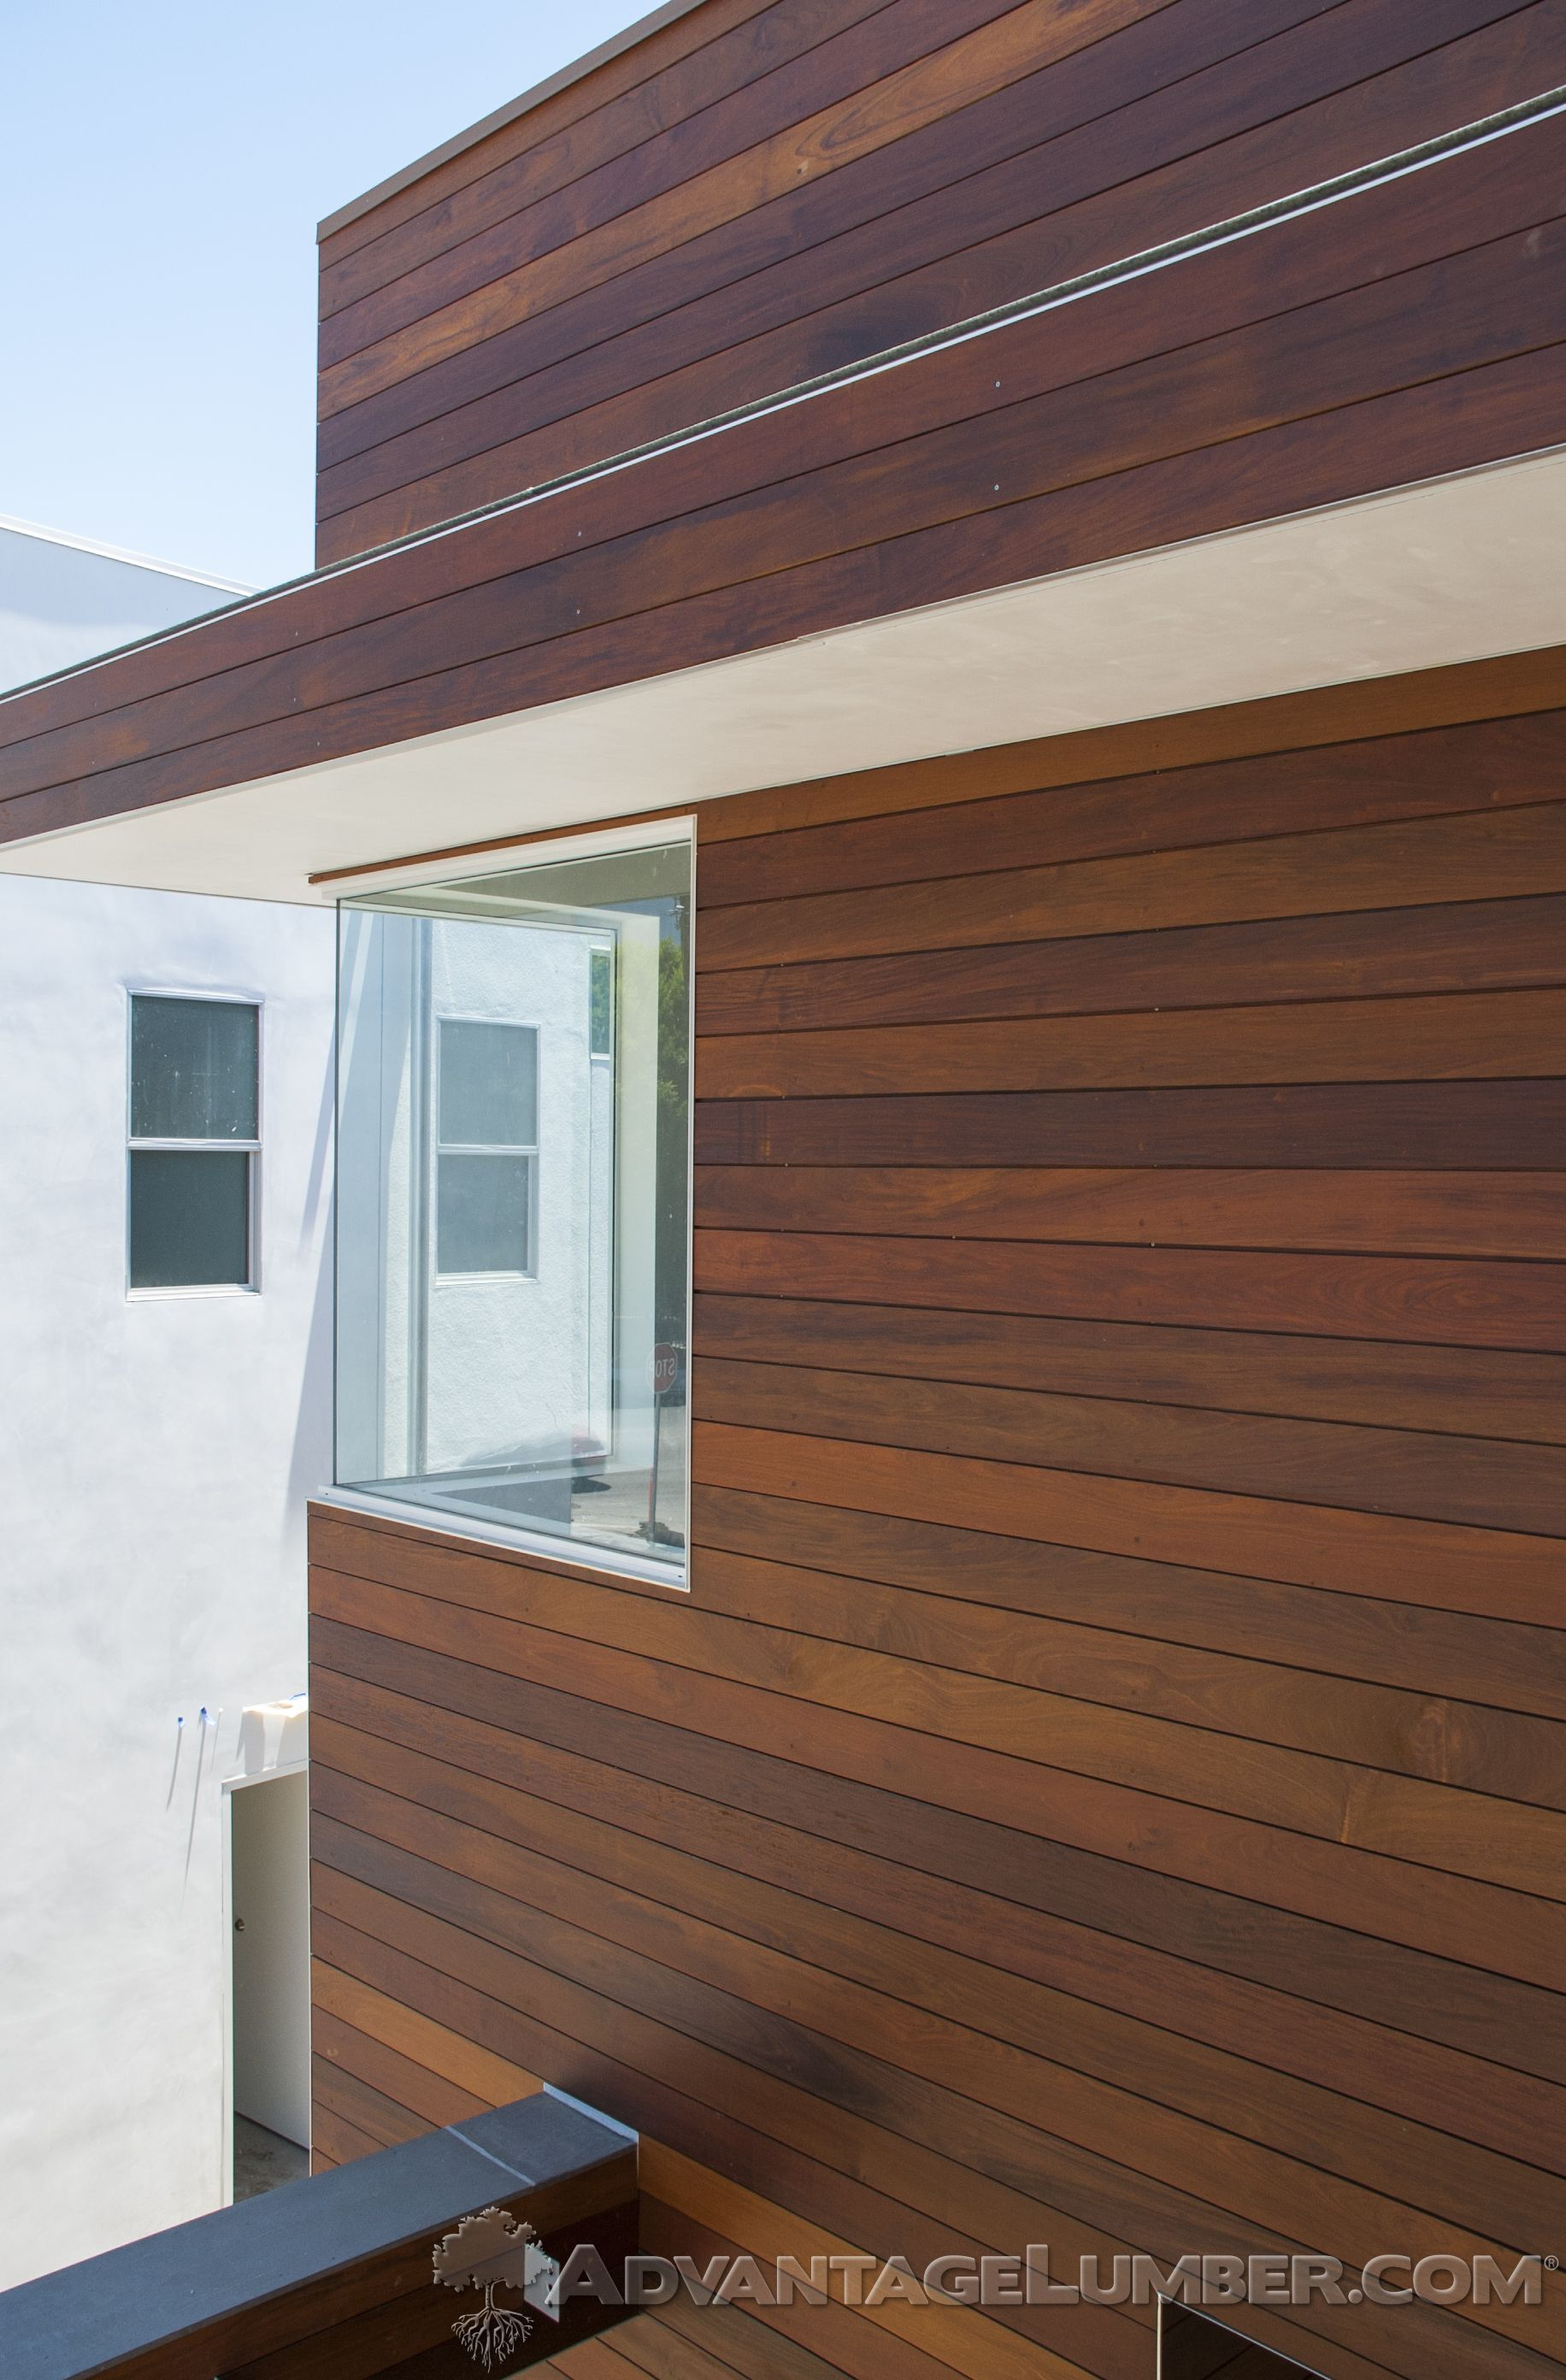 Revestimiento Exterior Paneles Advantage Ipe Shiplap Siding Will Make Your Home Stand Out